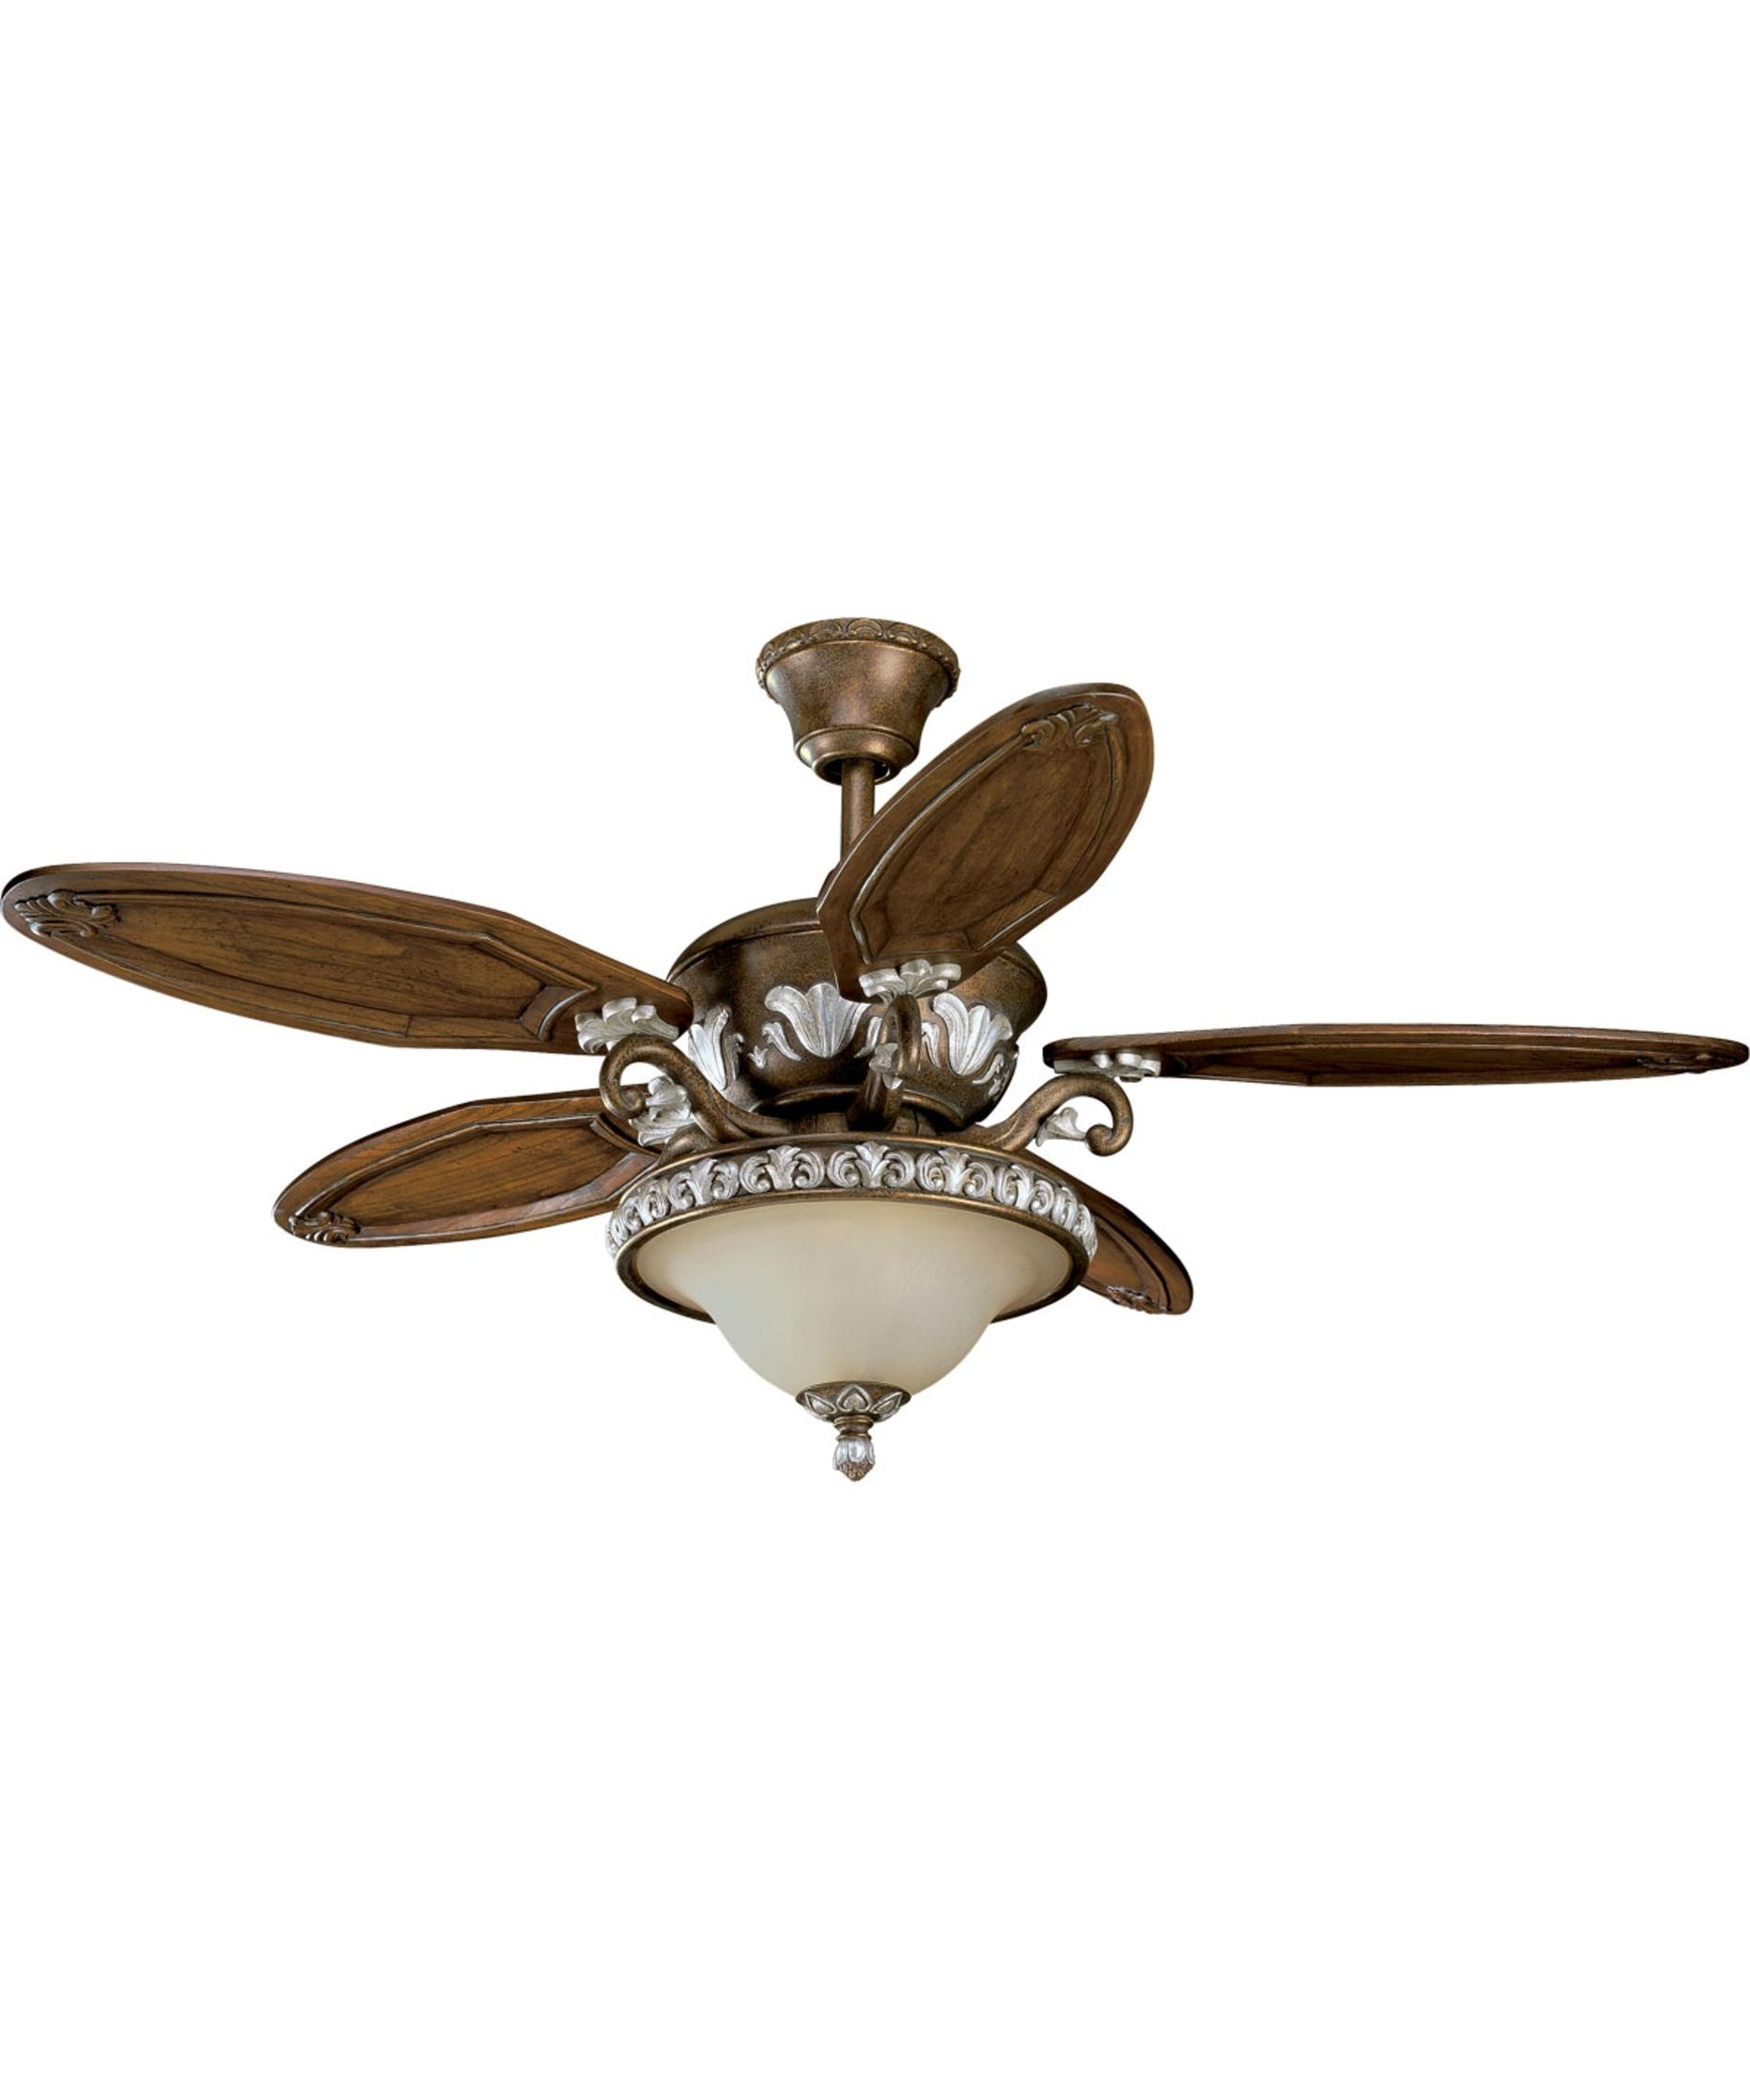 Amazon Outdoor Ceiling Fans With Lights Within Most Current Thomasville Lighting P2505 Carmel 54 Inch 5 Blade Ceiling Fan (View 9 of 20)